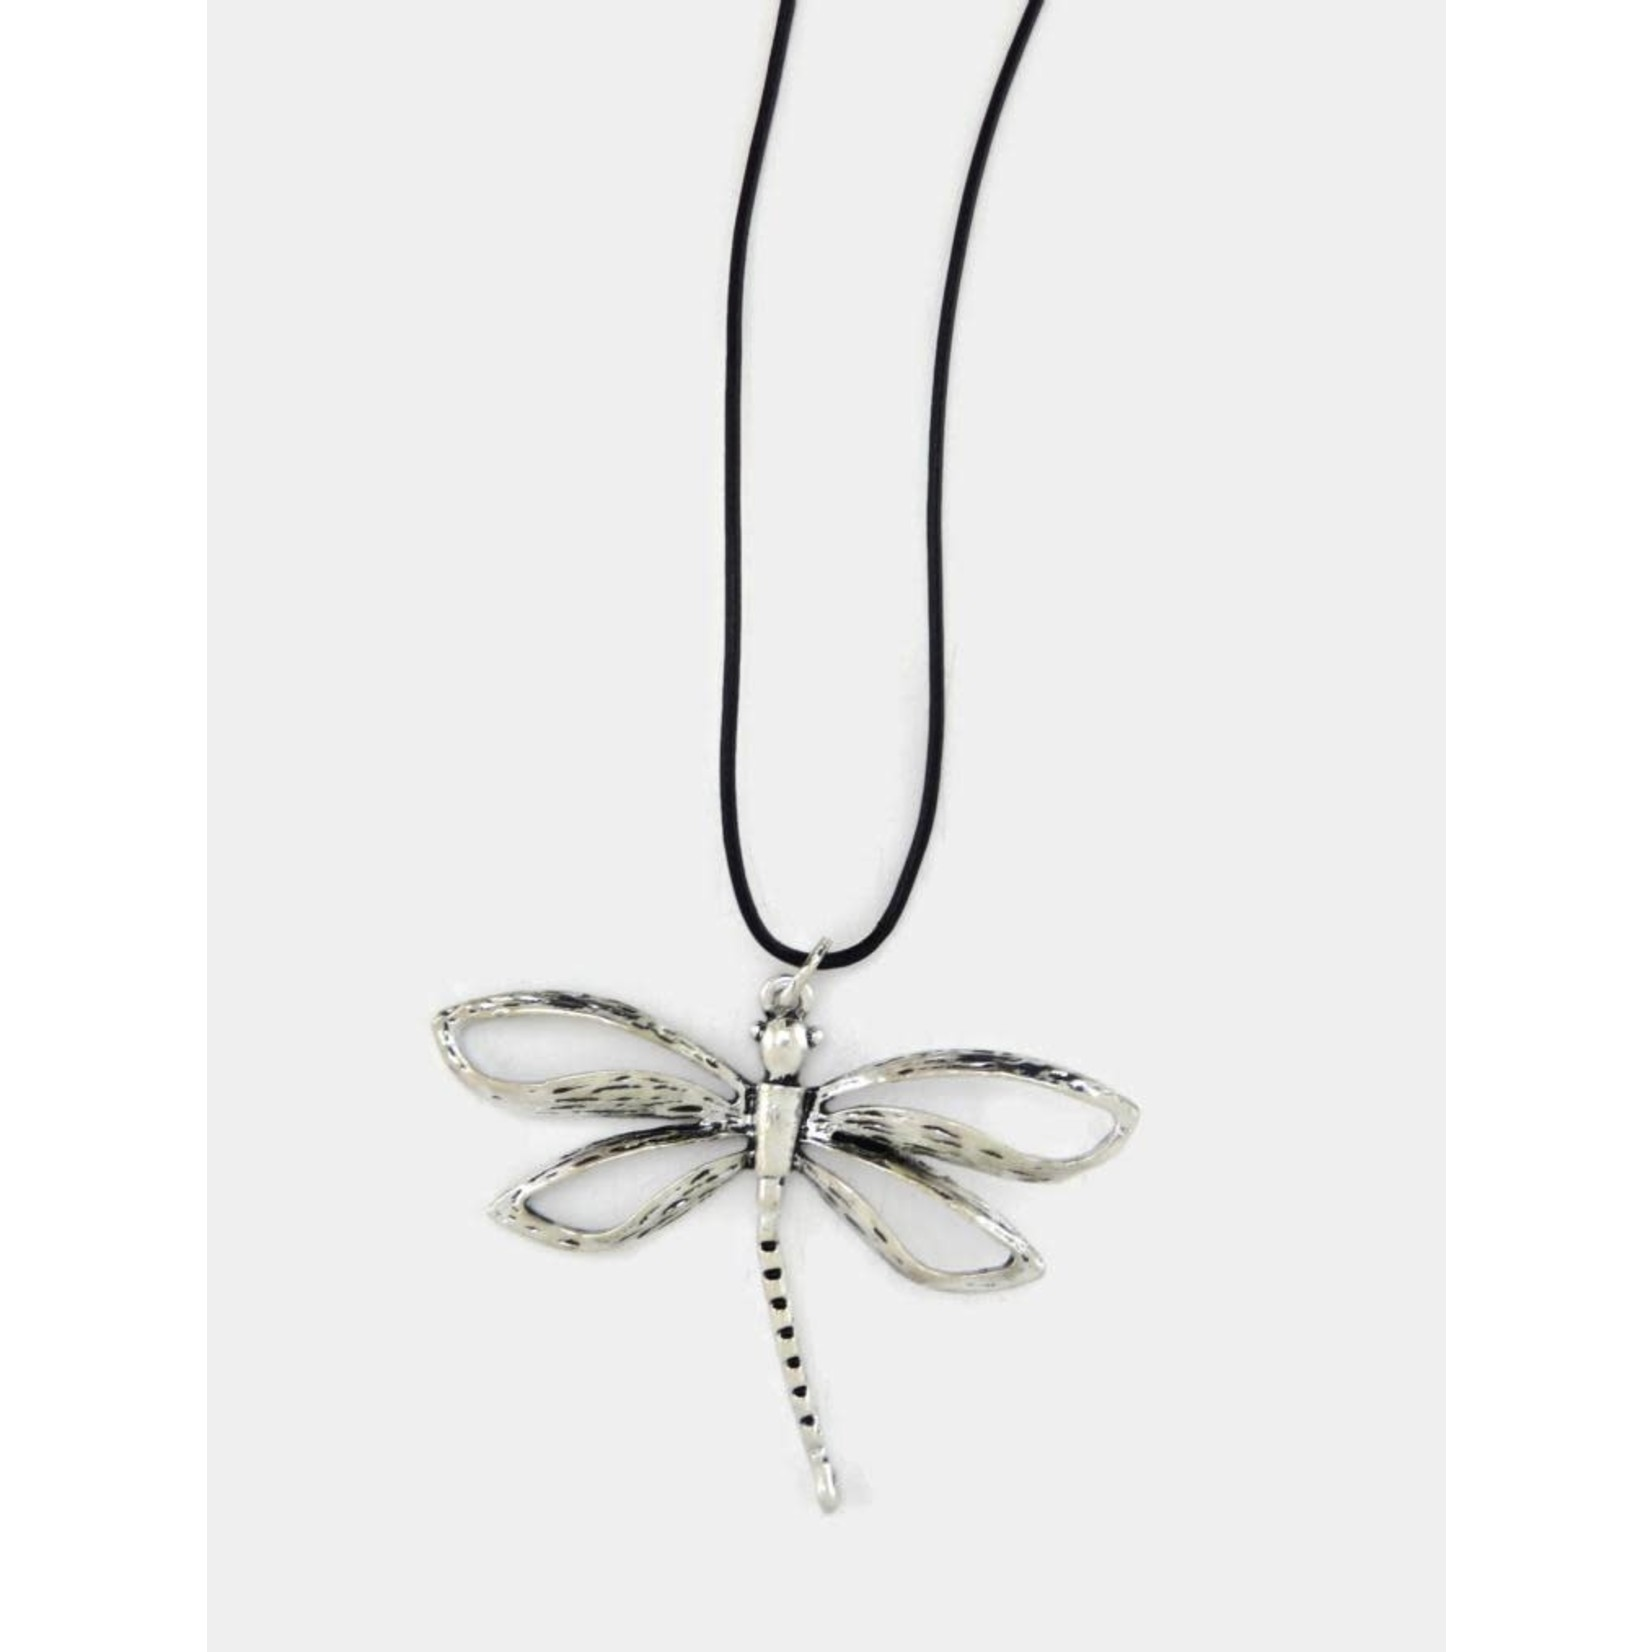 Silver Open Wing Dragonfly Necklace on Black Cord